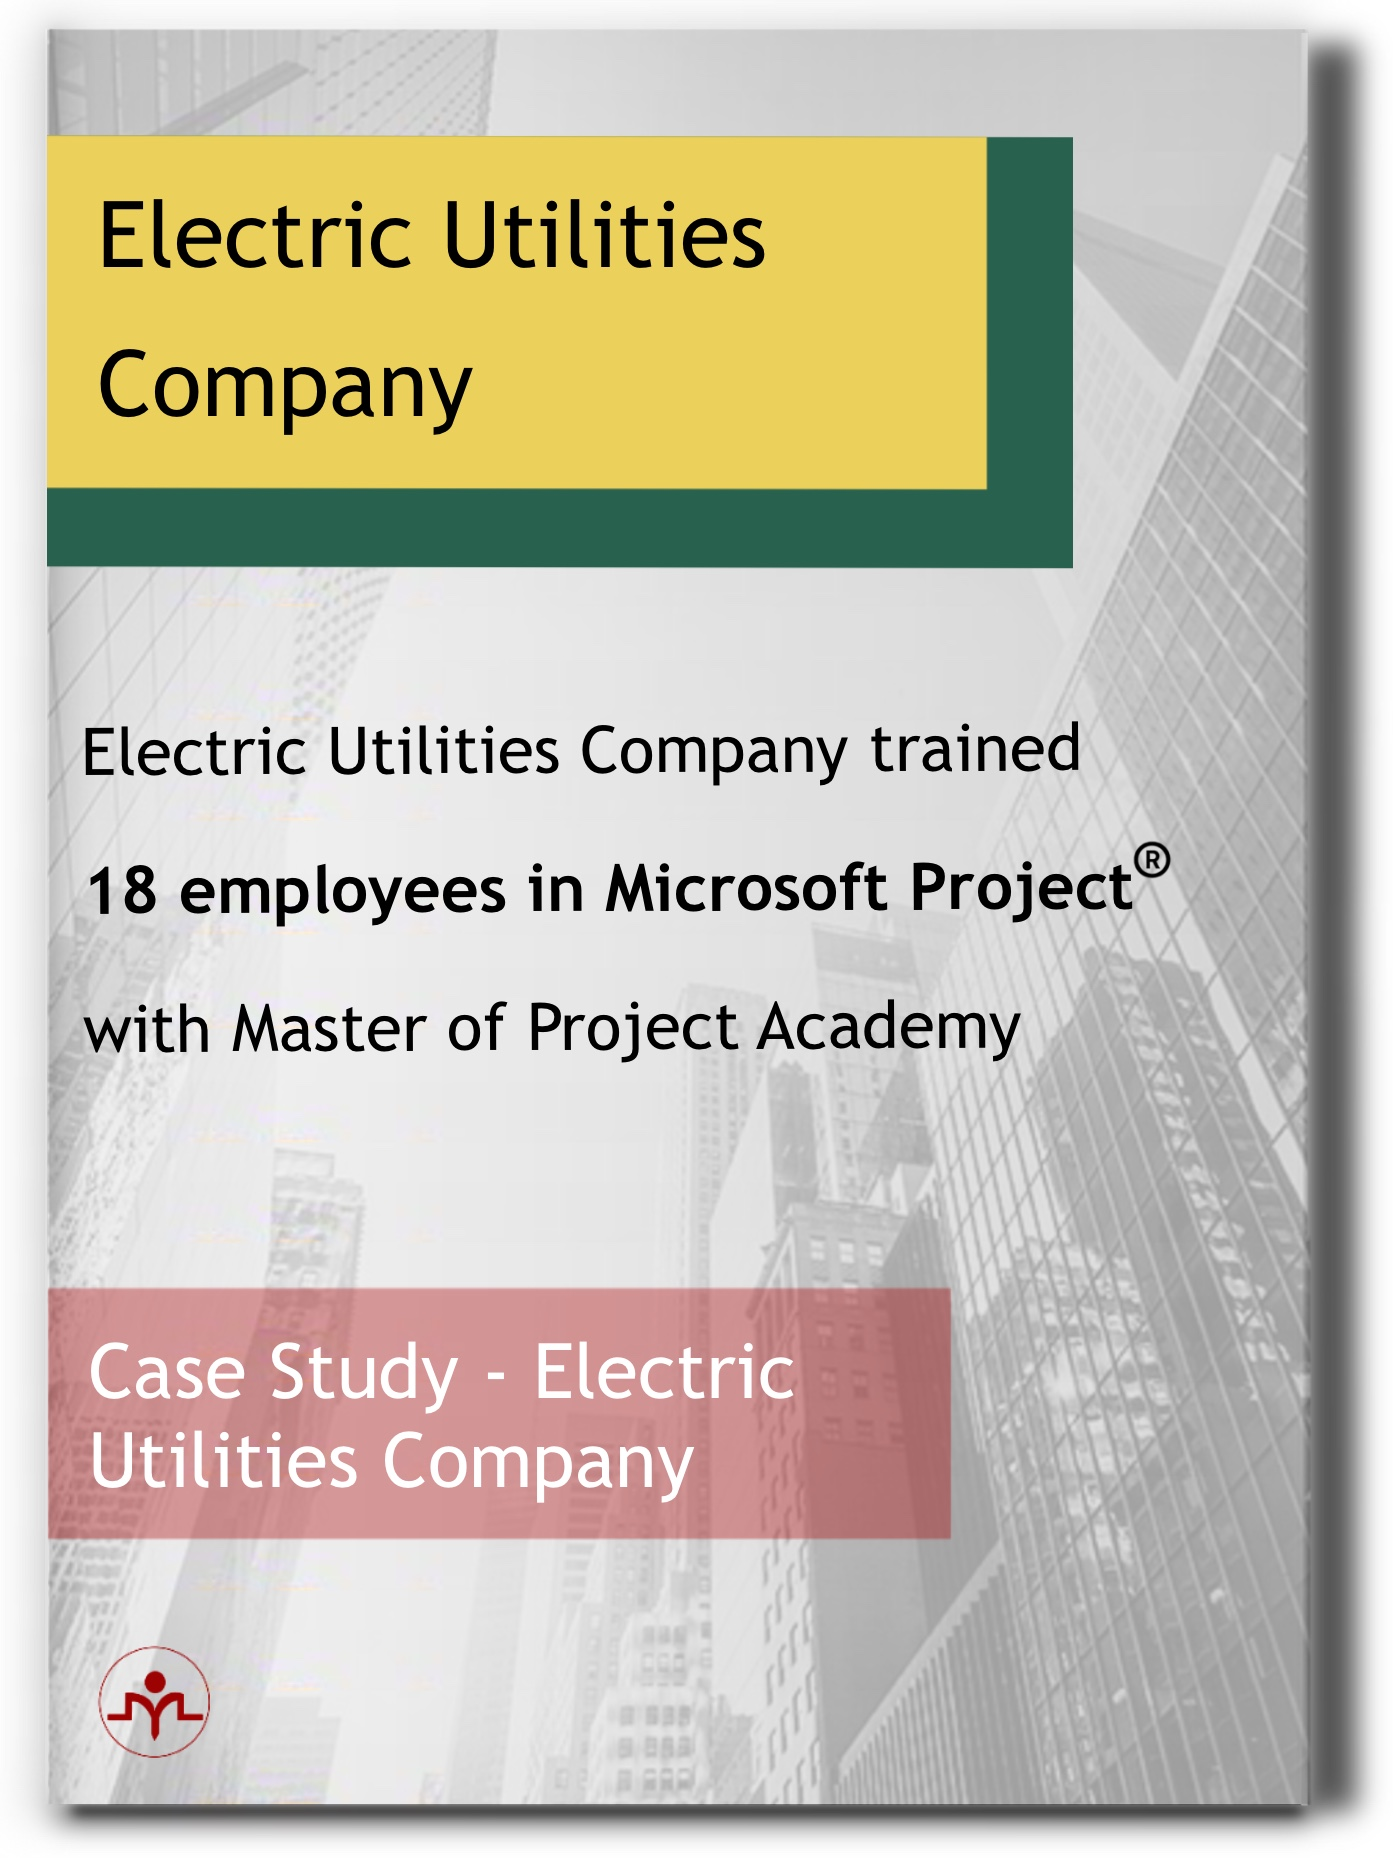 Electric Utilities Company-Client Case Study